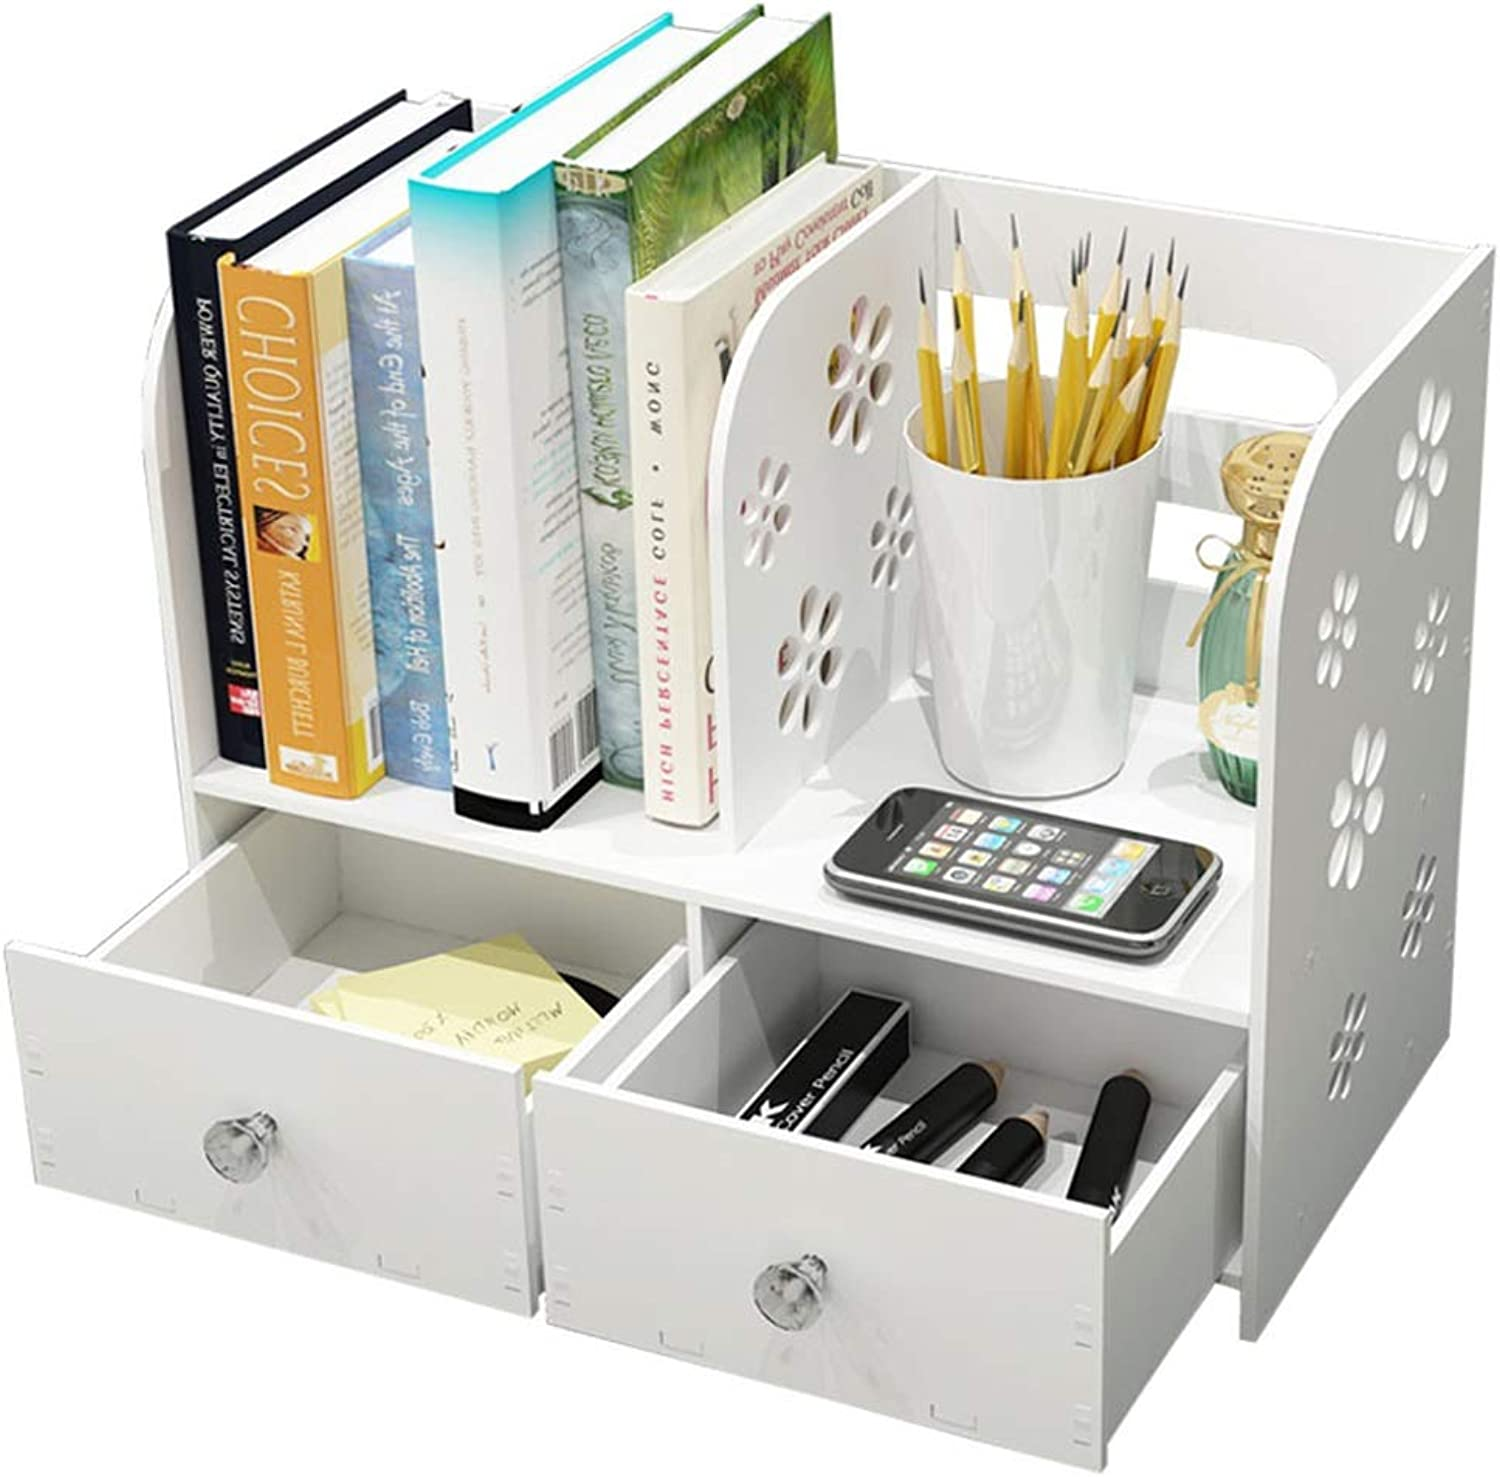 ZHIRONG Desk Organiser 2-Tier Multi-use Bookcase Bookshelf Storage Rack with 2 Drawer for Home Kitchen Office Bedroom Bathroom (White)